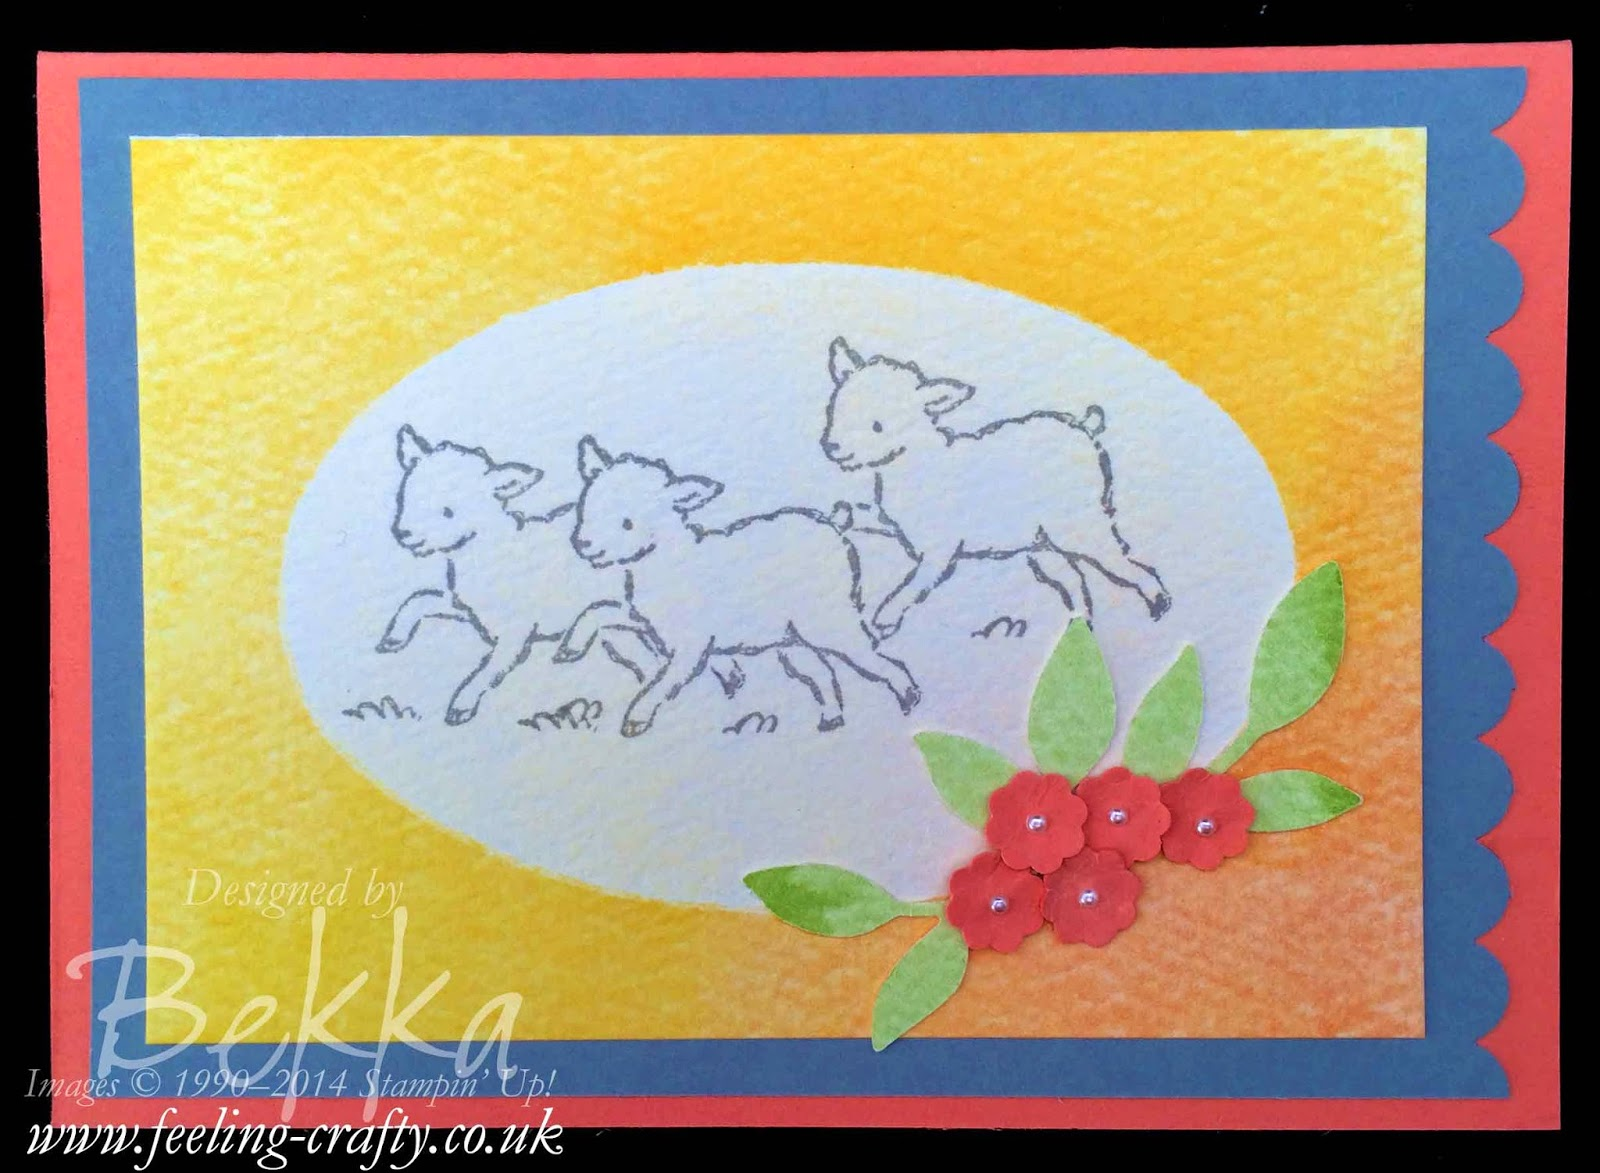 Counting Sheep - A Storybook Friends Card by UK Stampin' Up! Demo Bekka - she taught this at a class check it out here